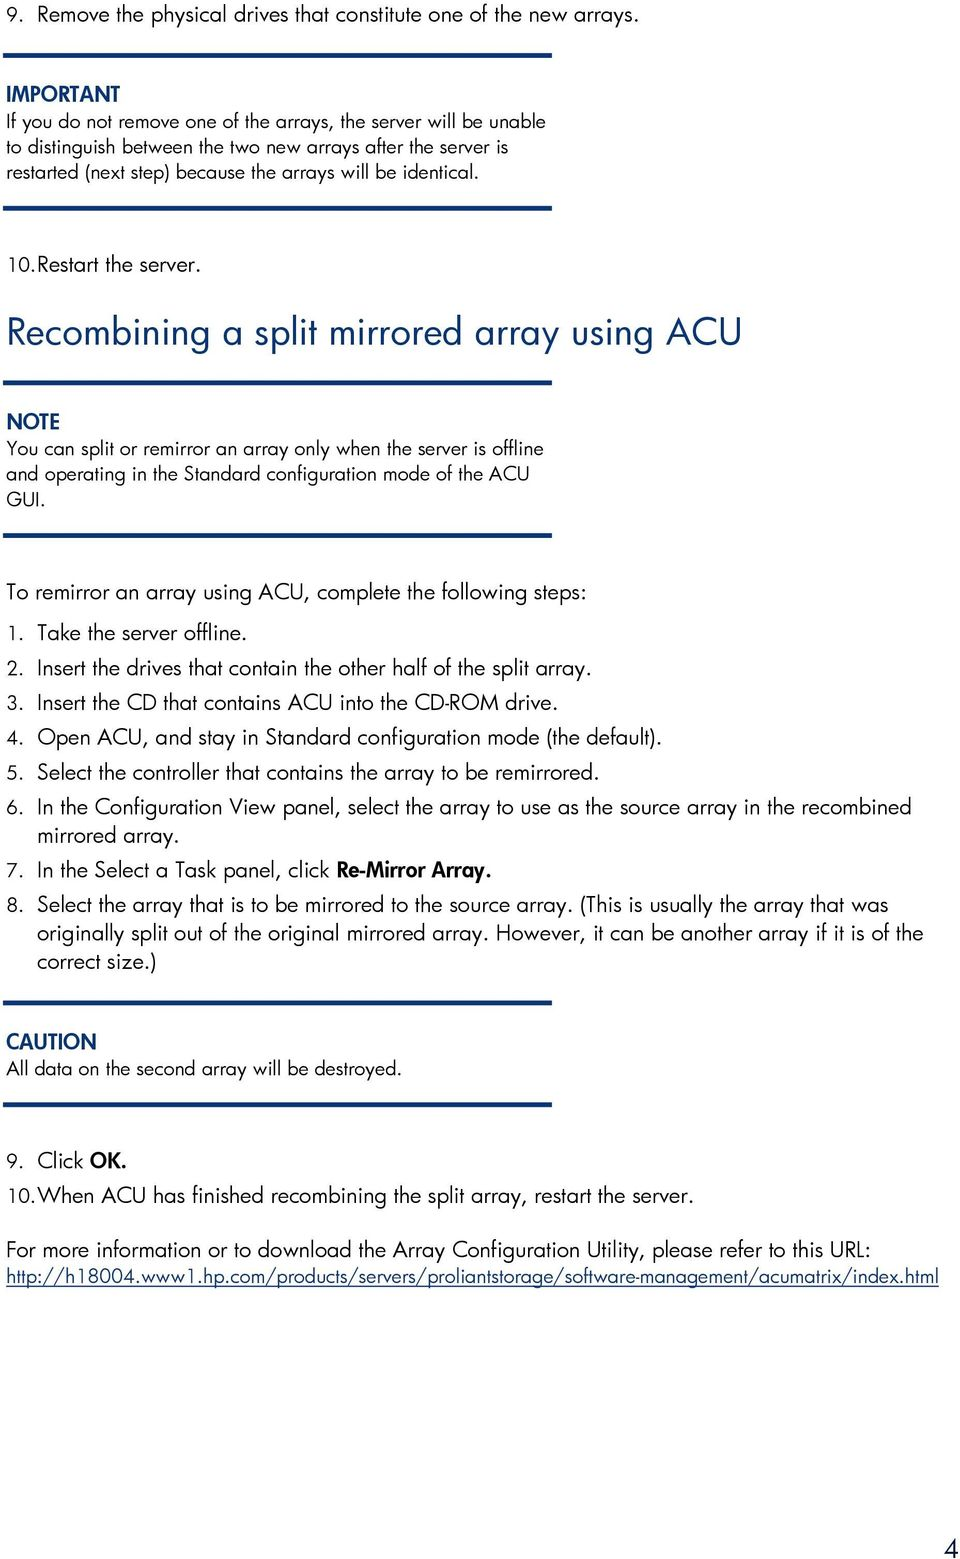 Restart the server. Recombining a split mirrored array using ACU You can split or remirror an array only when the server is offline and operating in the Standard configuration mode of the ACU GUI.